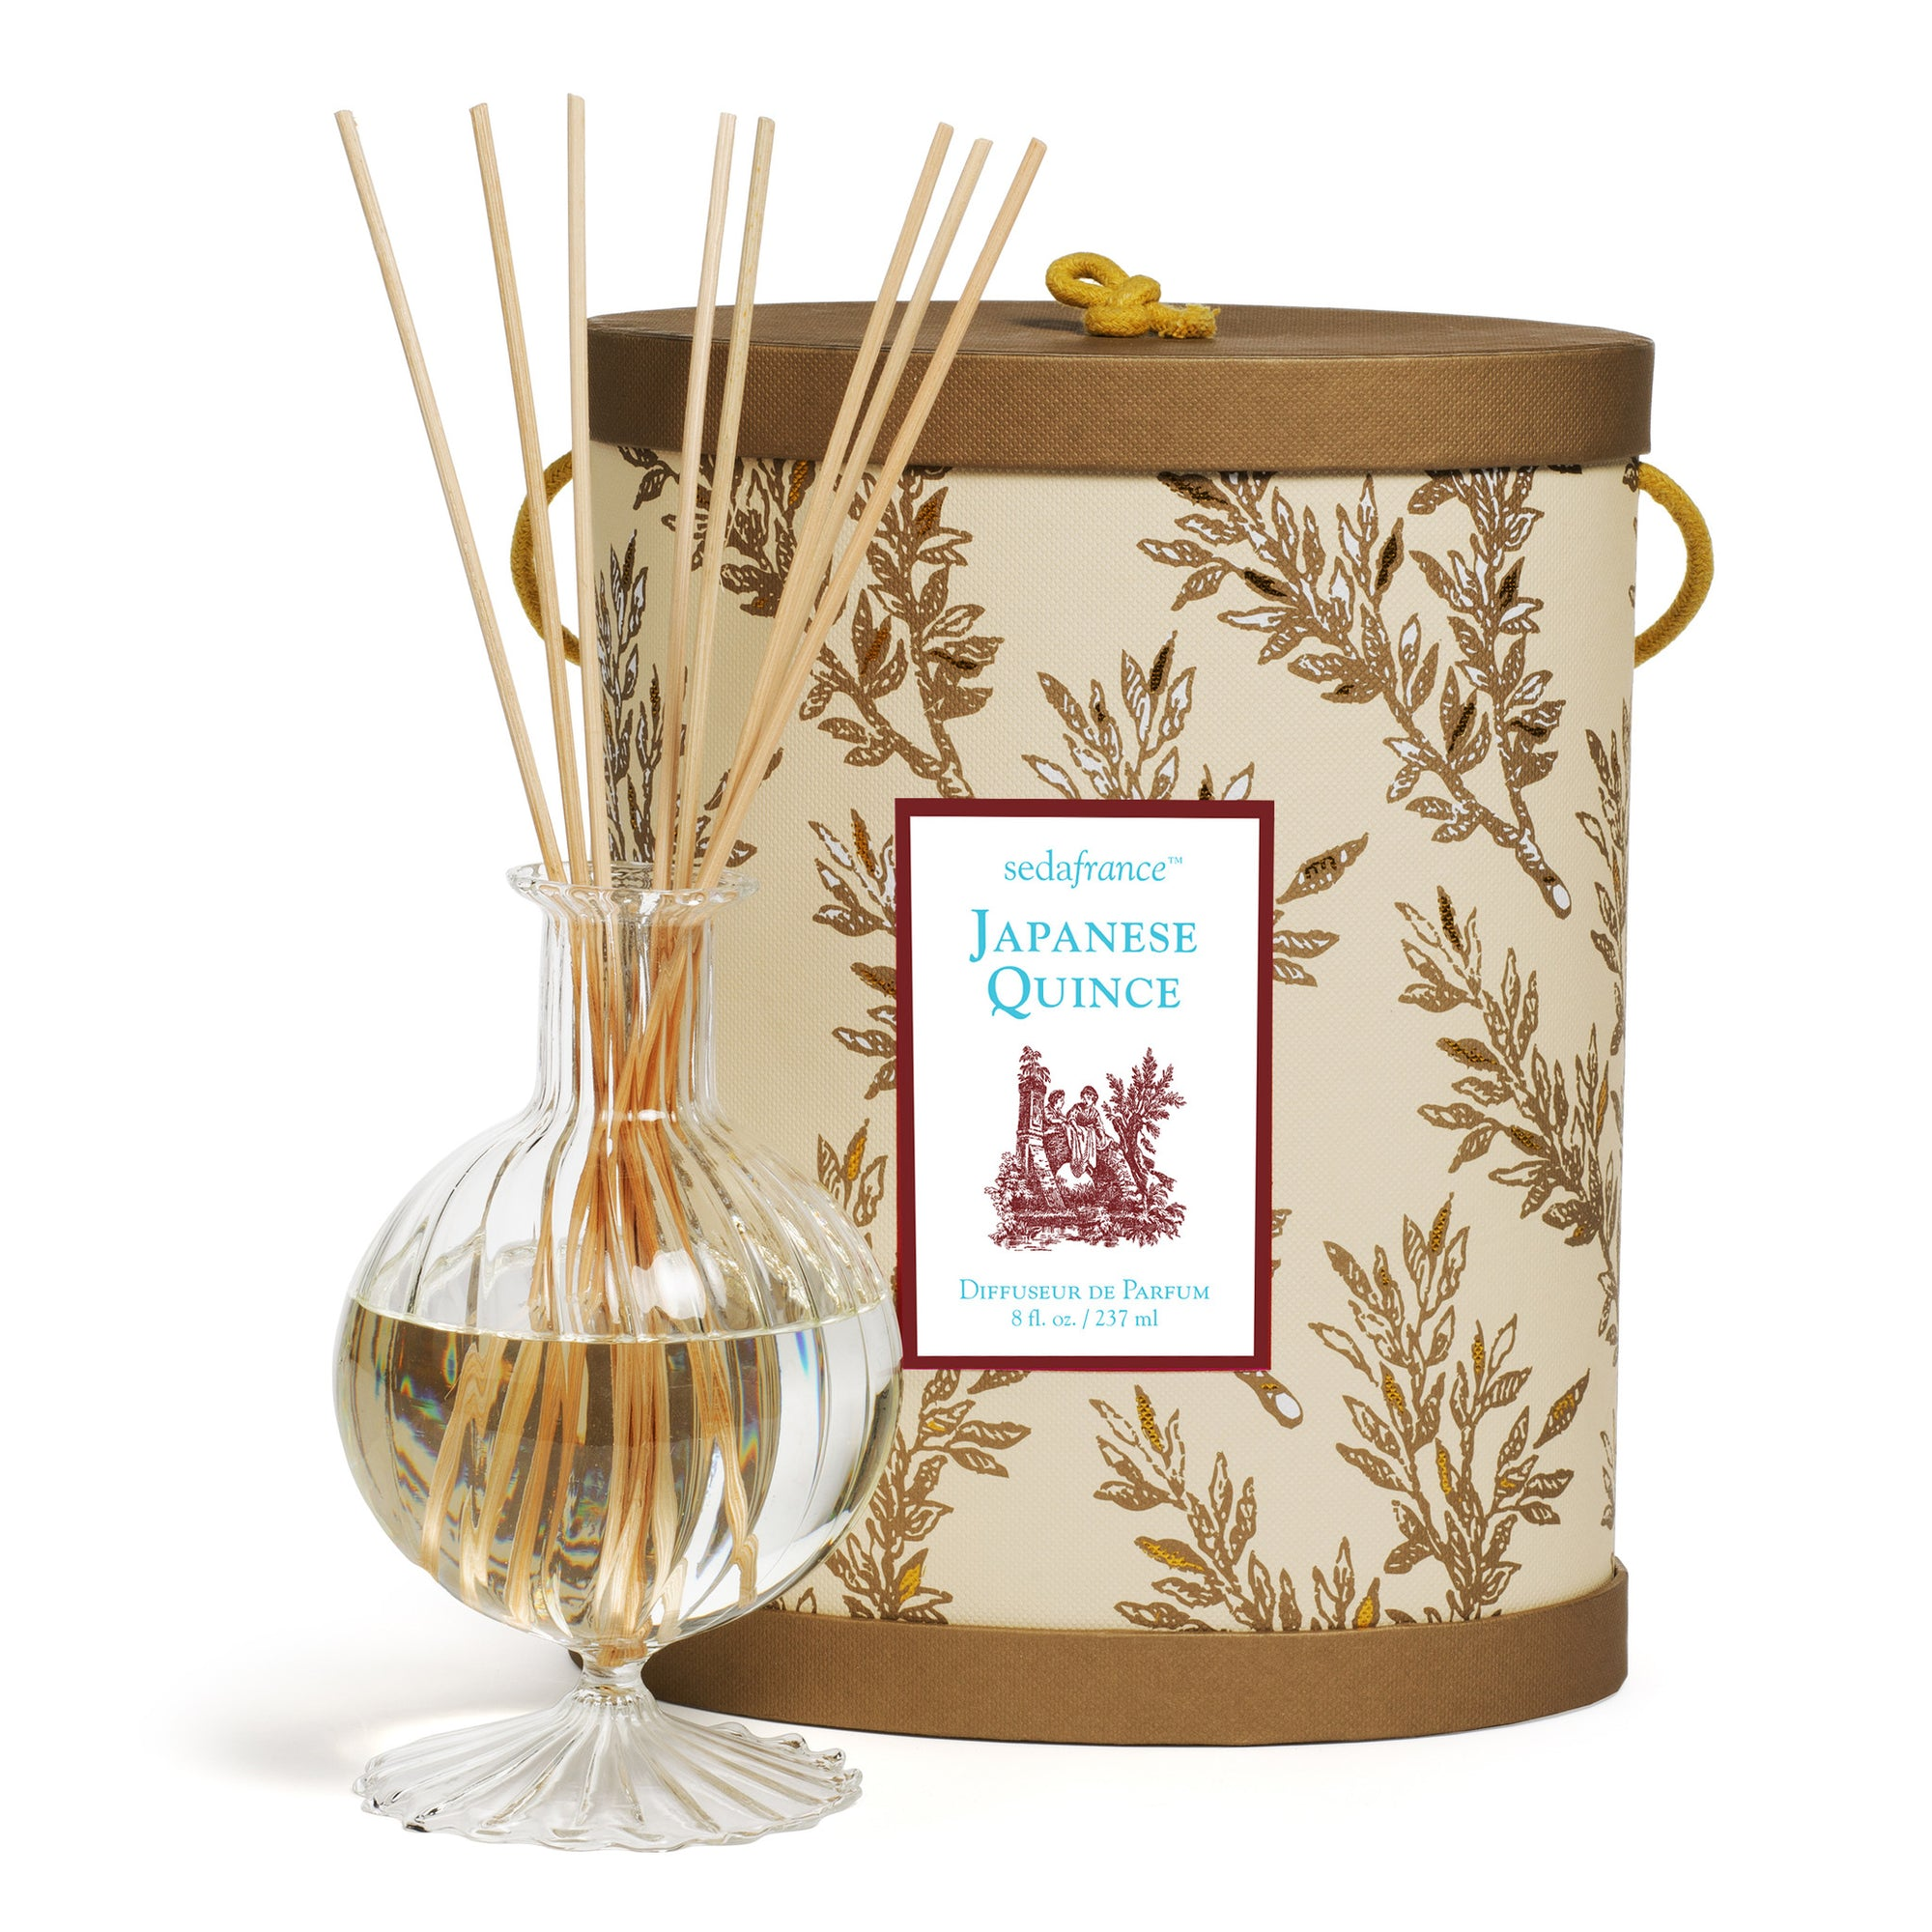 Seda France Classic Toile Japanese Quince Diffuser -  Home Fragrance - Seda France - Putti Fine Furnishings Toronto Canada